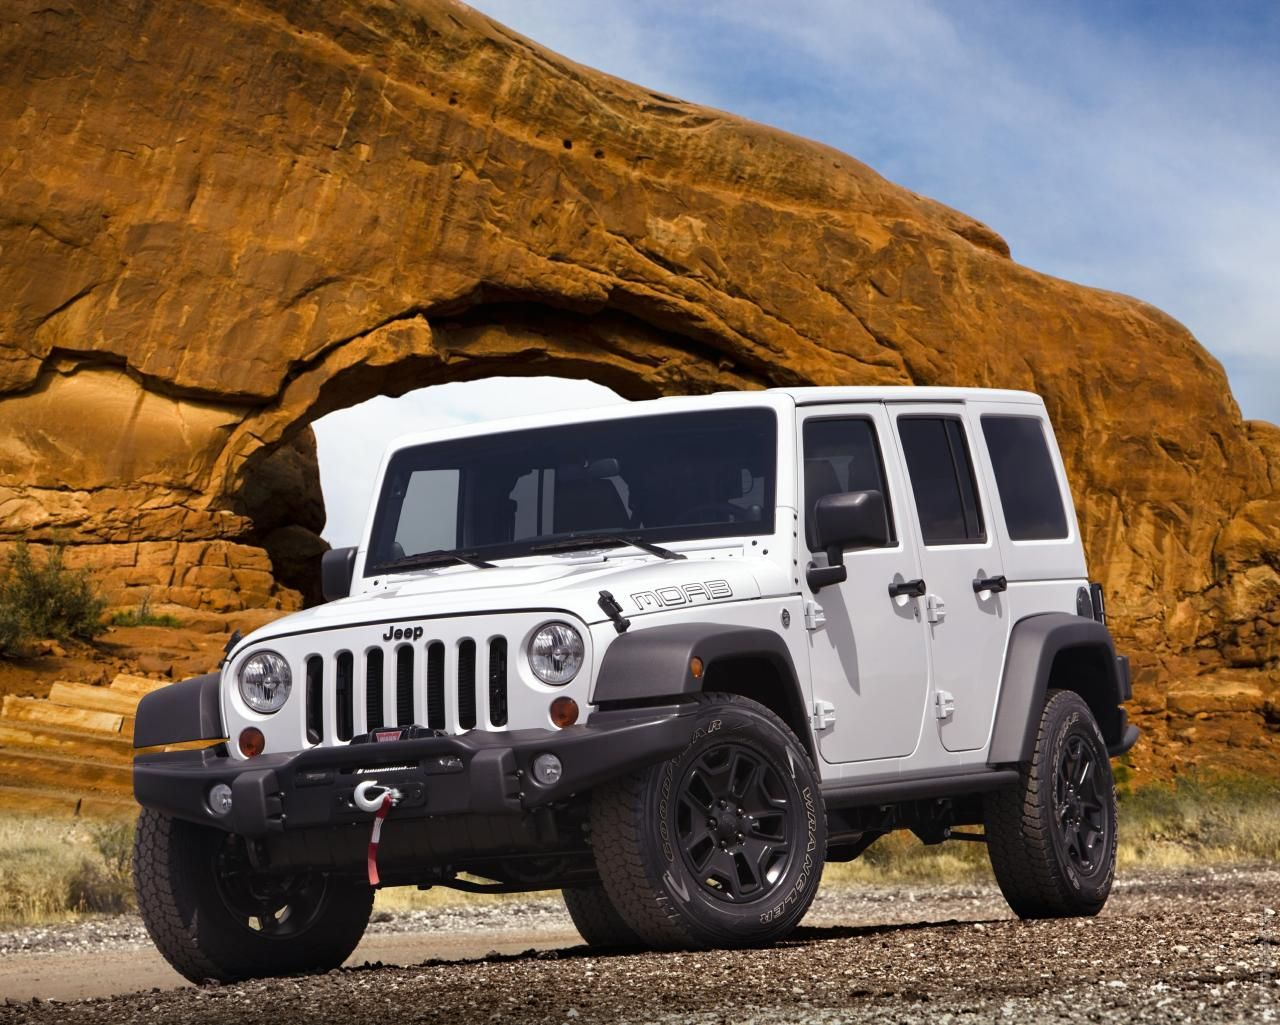 2013 Wrangler Unlimited Moab Jeep all white baby, with